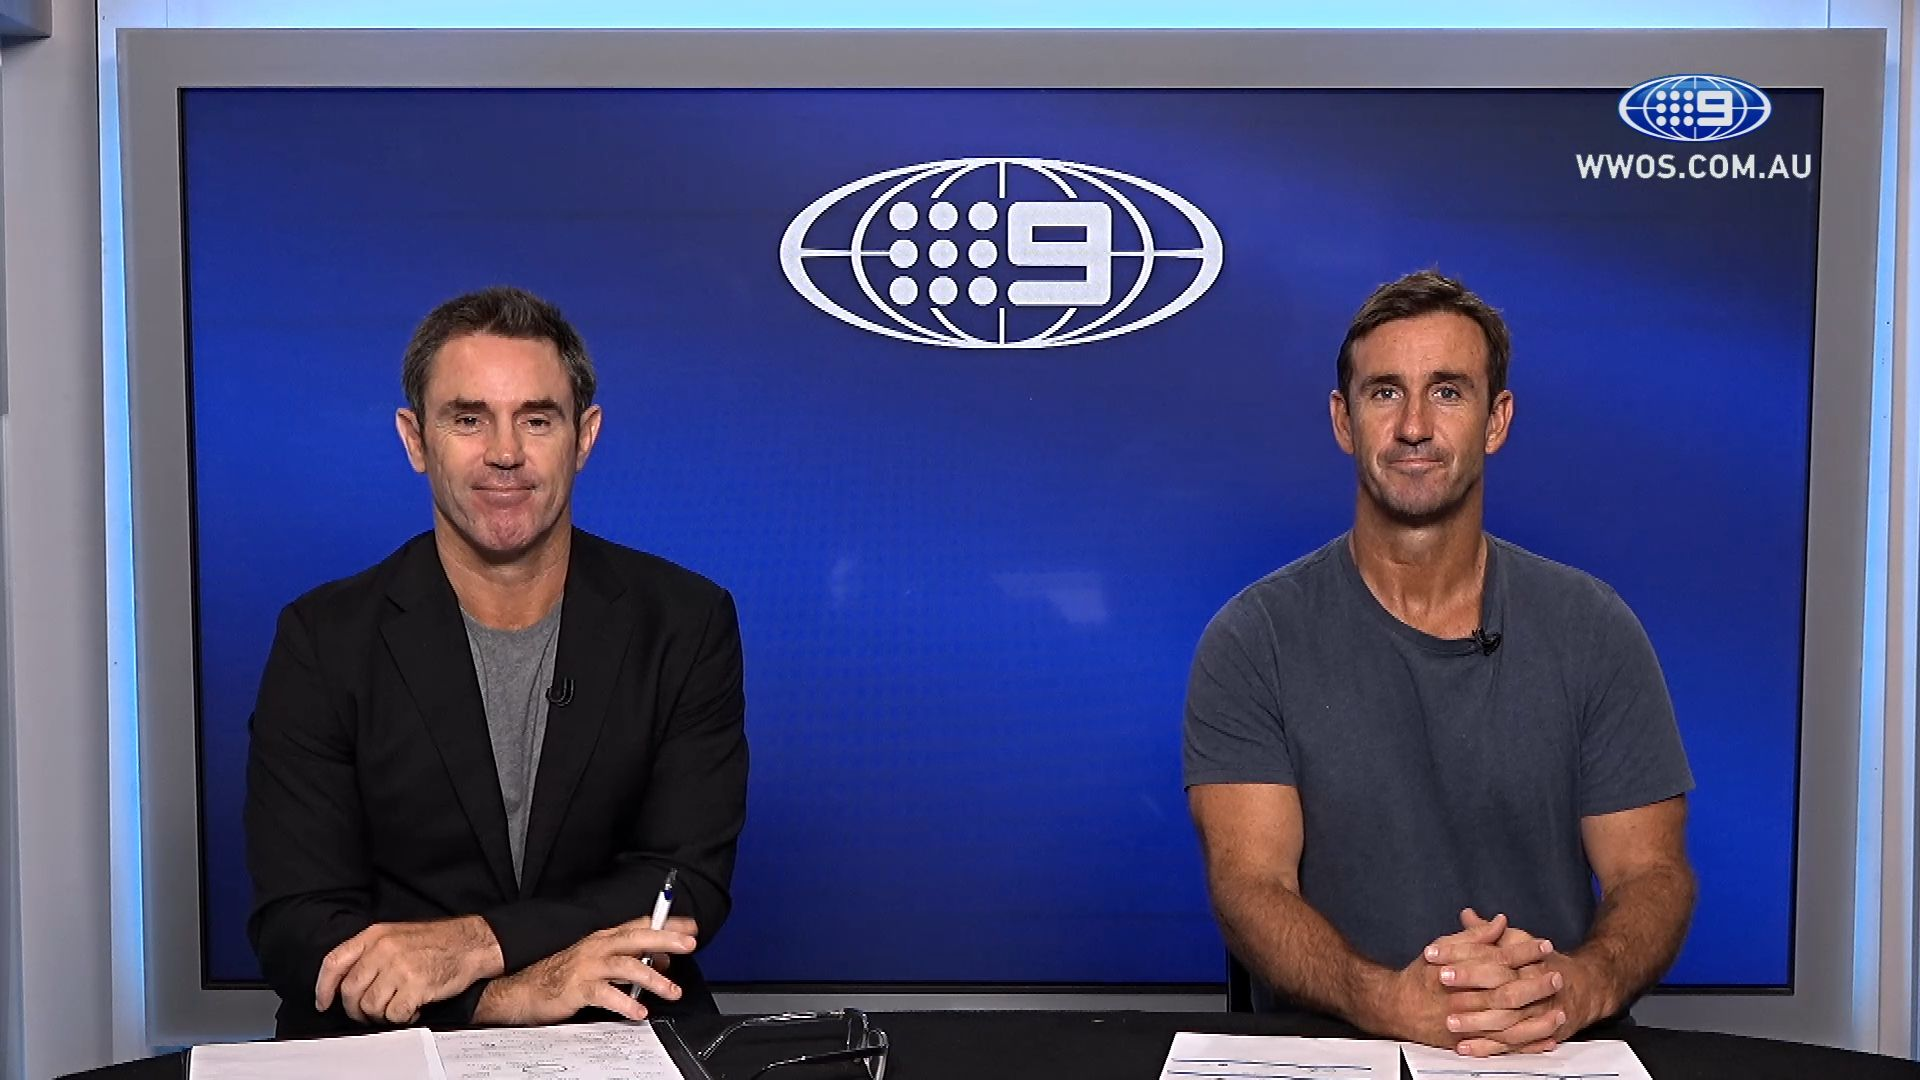 NRL Round 3 tips: Andrew Johns, Brad Fittler and Nine's experts give their predictions